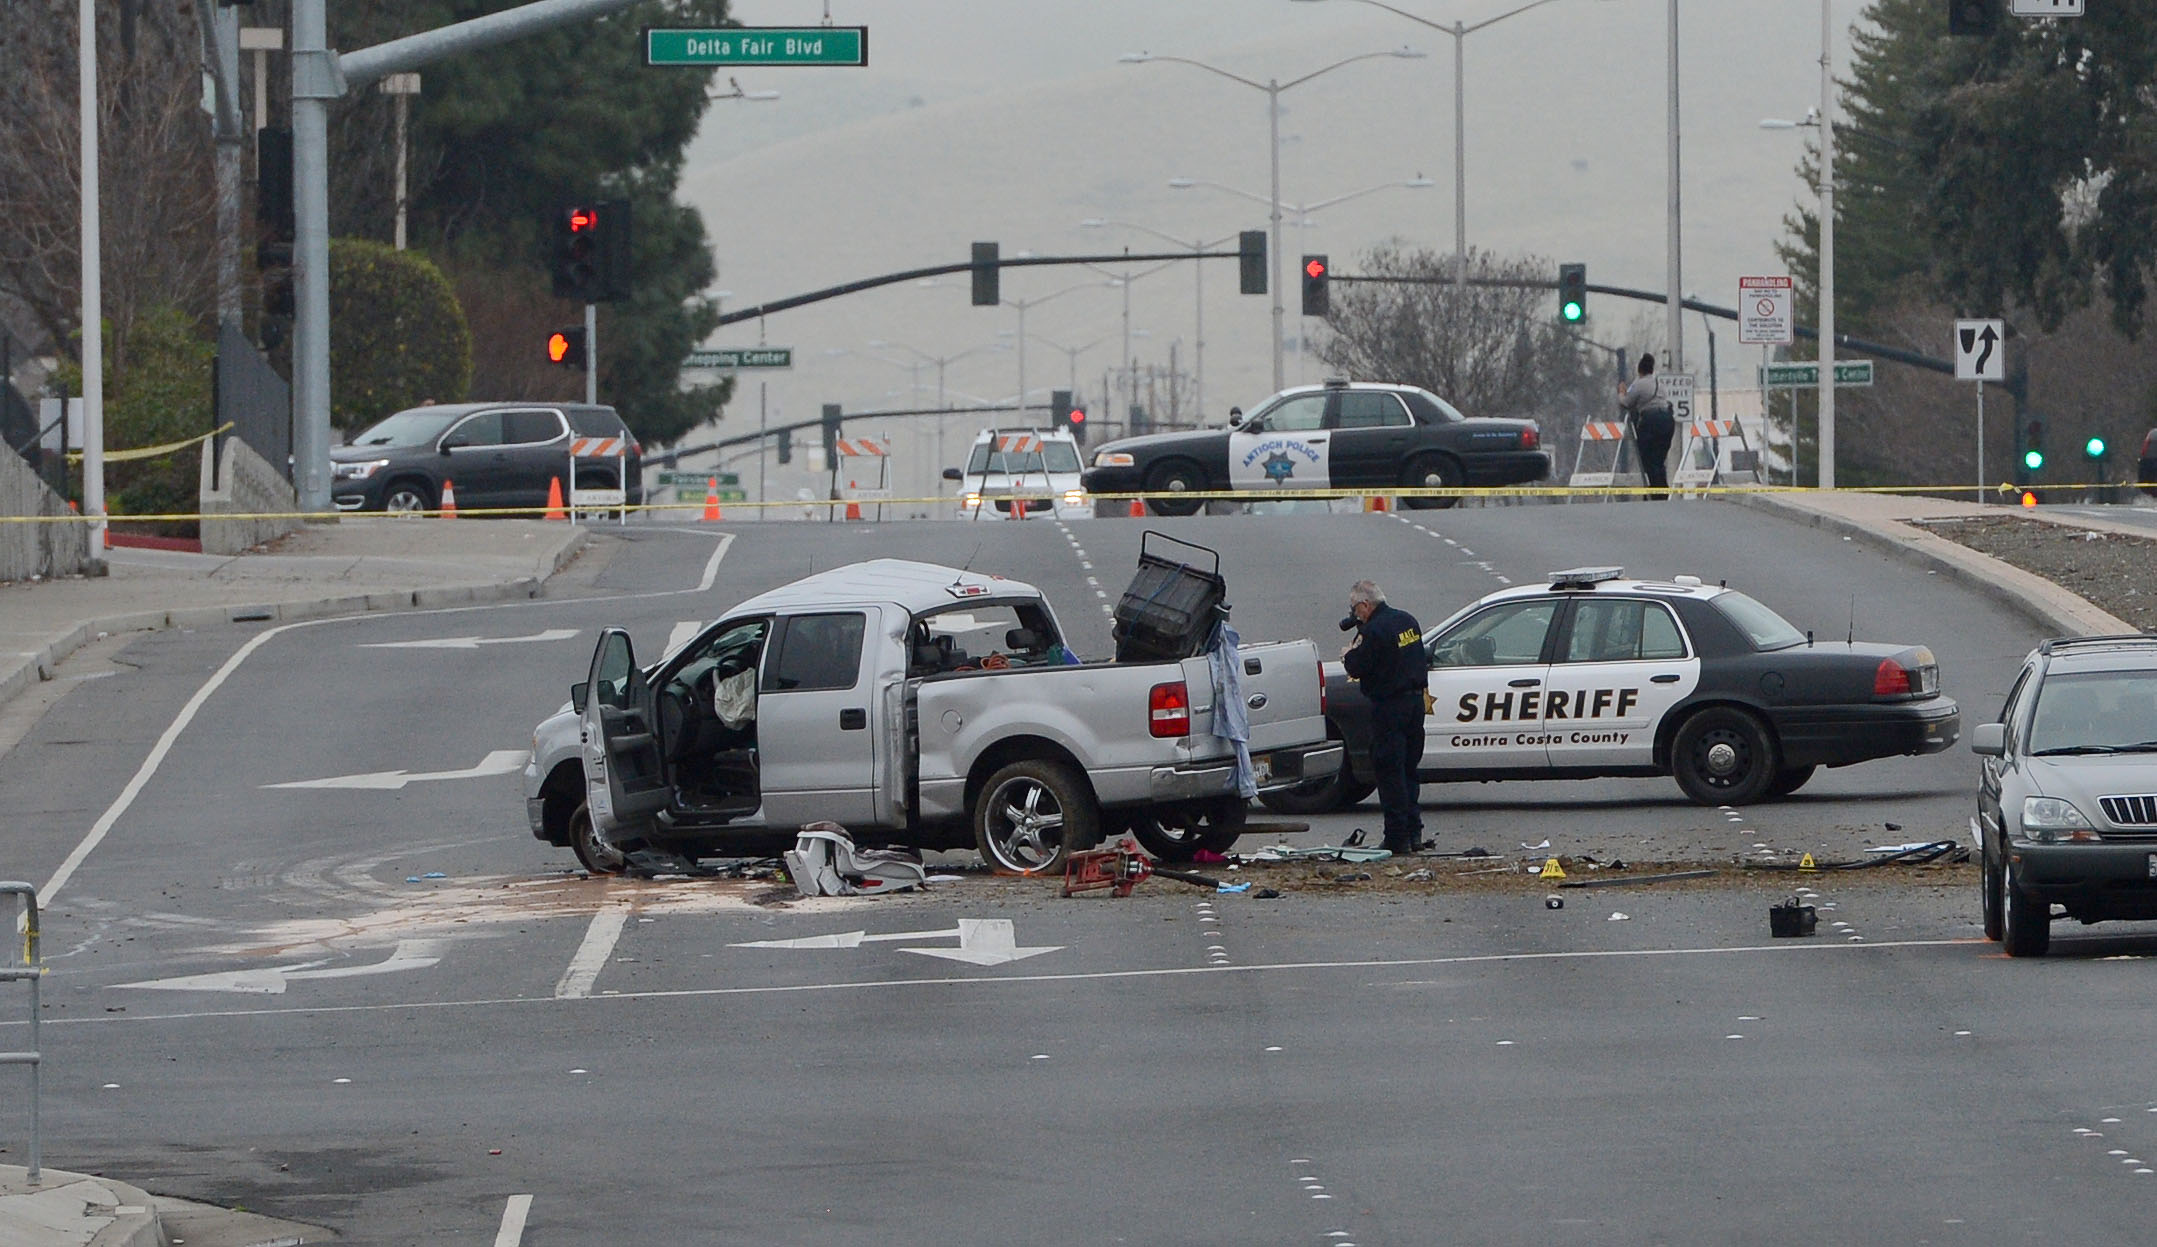 Girl, 4, Killed in Crash Involving Stolen Vehicle in Antioch; Suspect Arrested